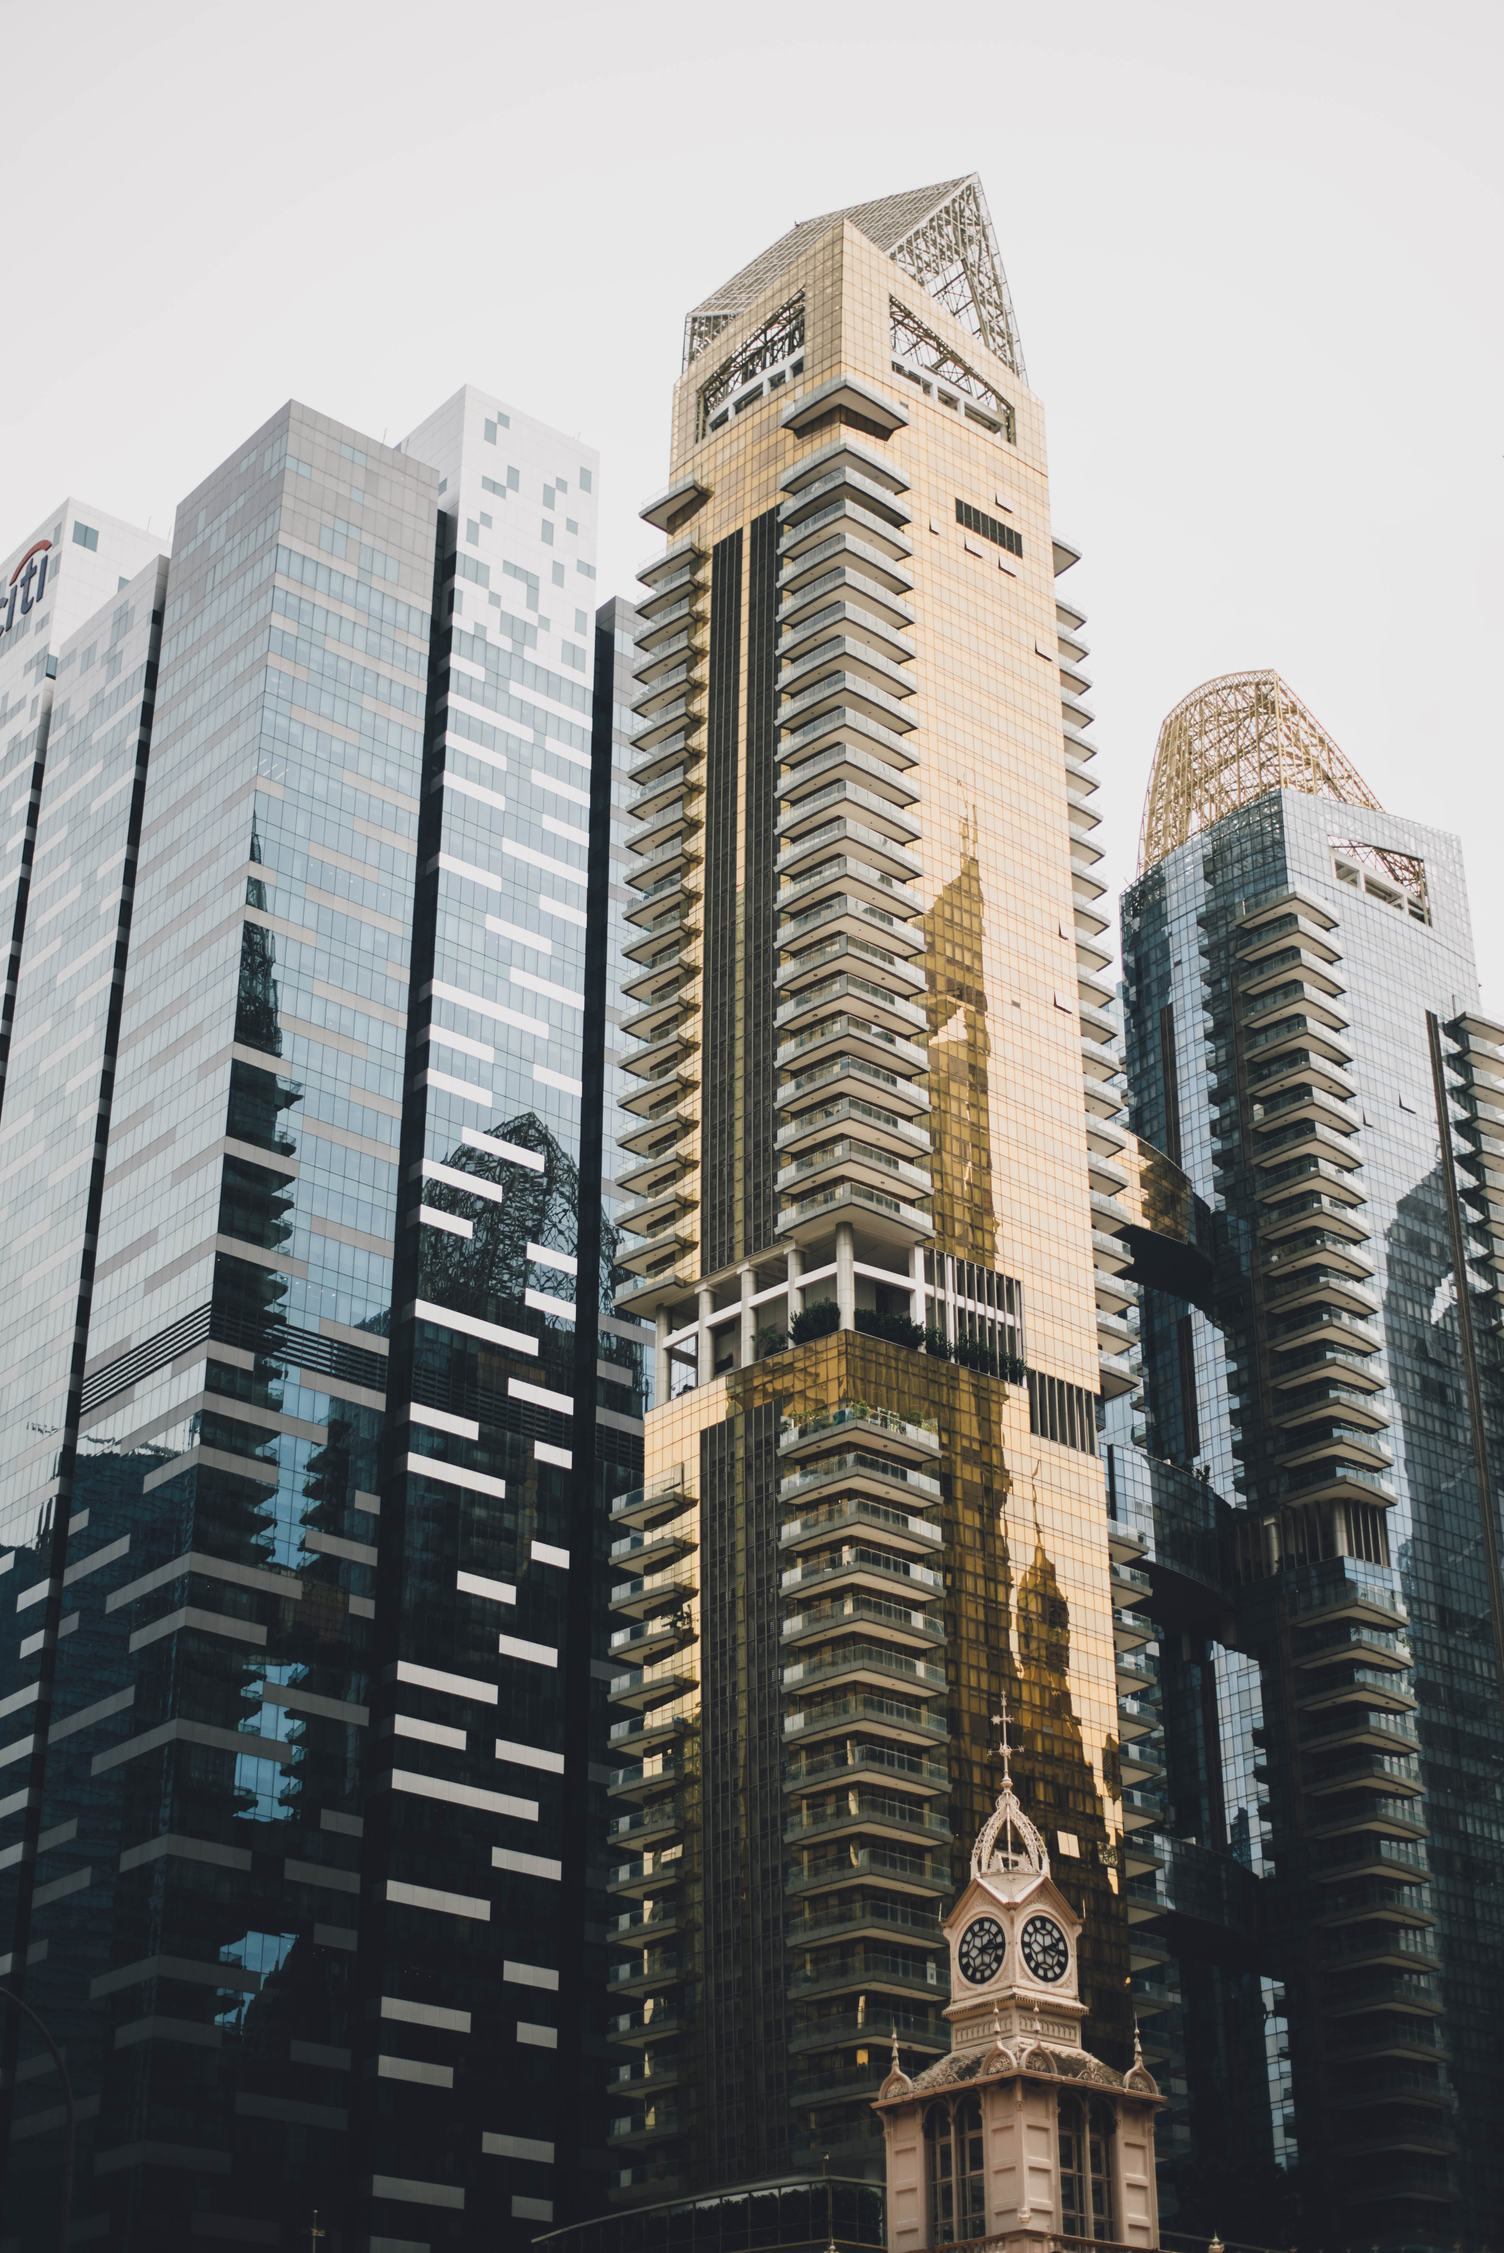 Skyscrapers with Glass Facade